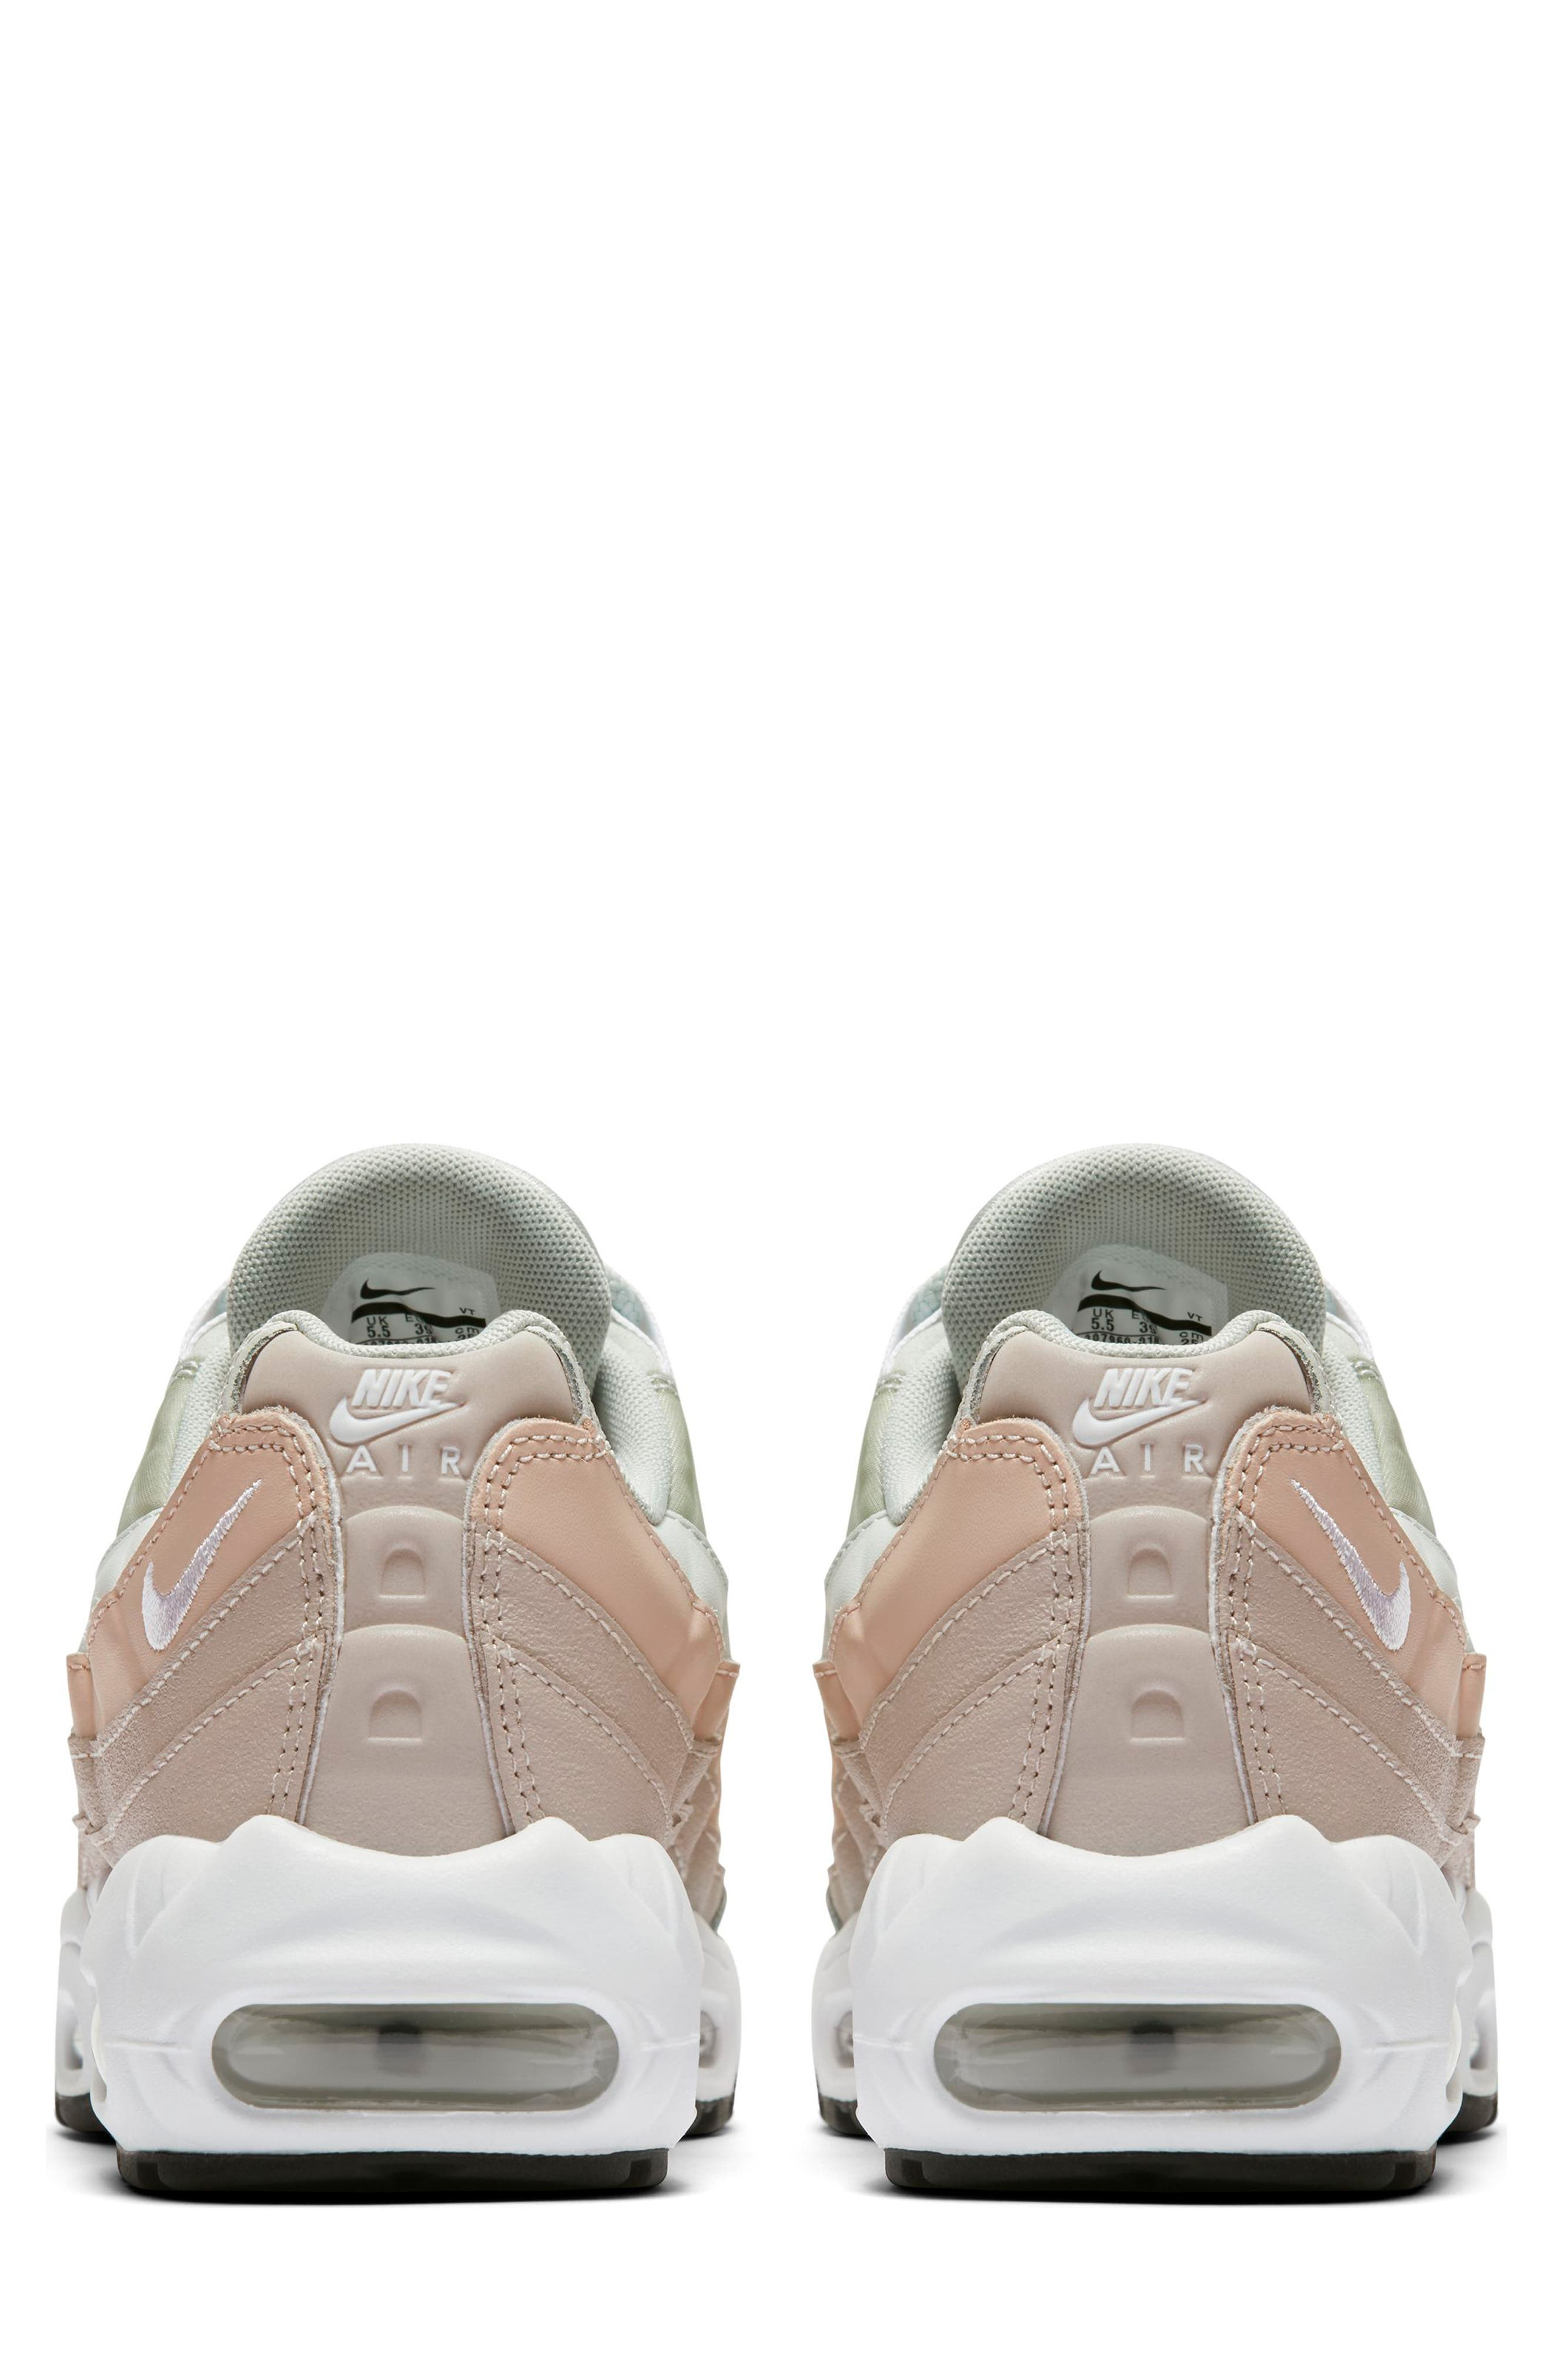 NIKE,                             Air Max 95 Running Shoe,                             Alternate thumbnail 2, color,                             SILVER/ WHITE/ MOON PARTICLE